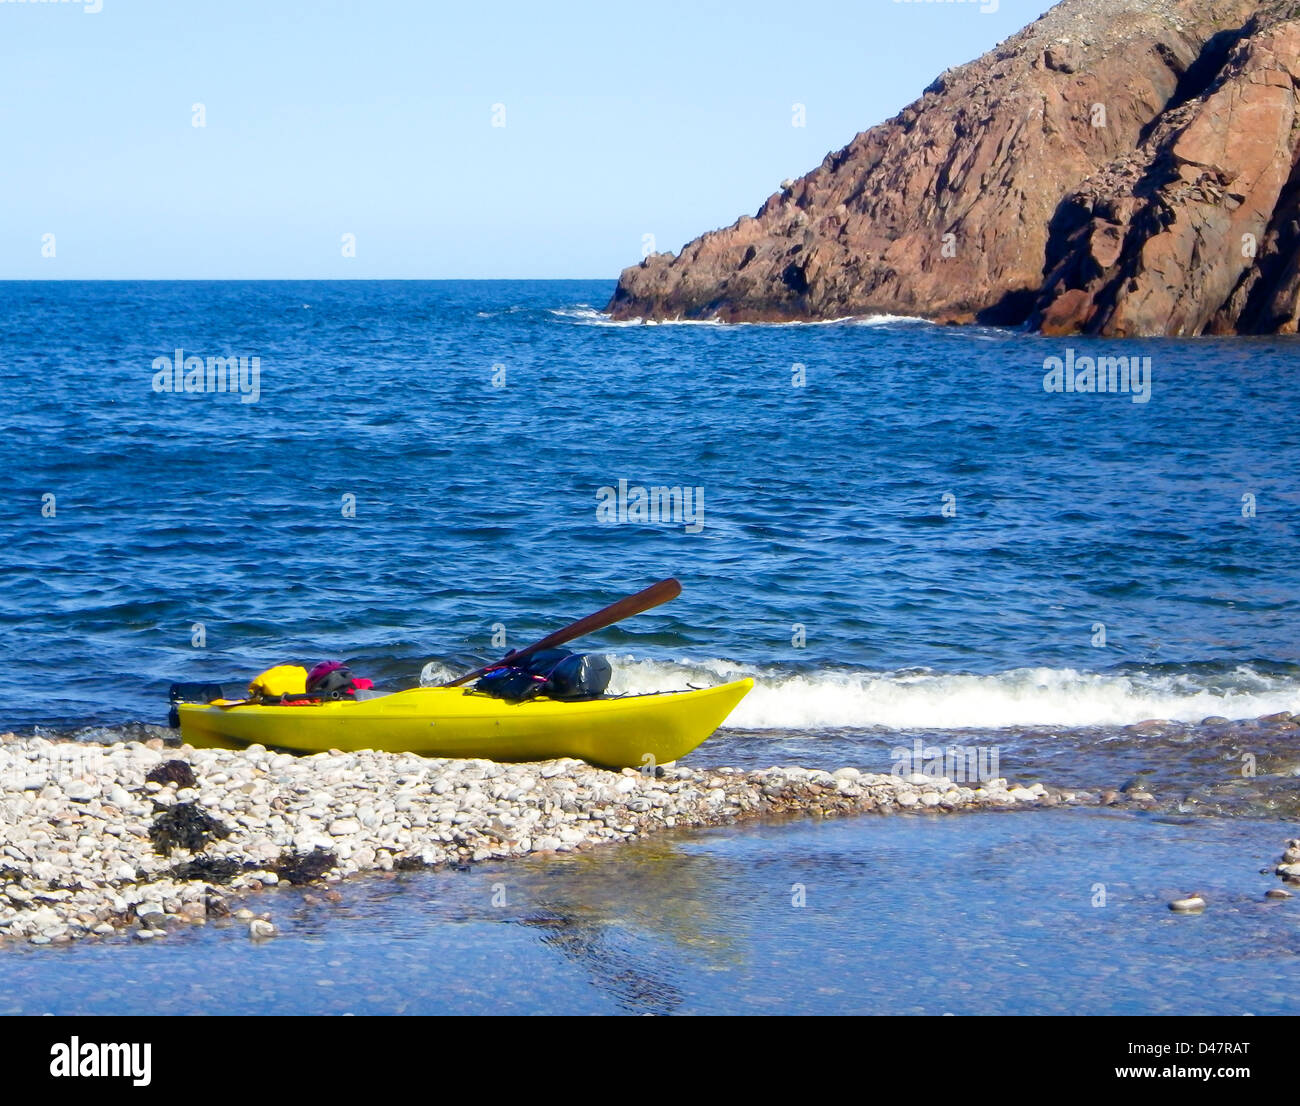 kayak well equipped and ready for expedition, anchored on a beach of Cape Breton,, Nova Scotia, Canada - Stock Image